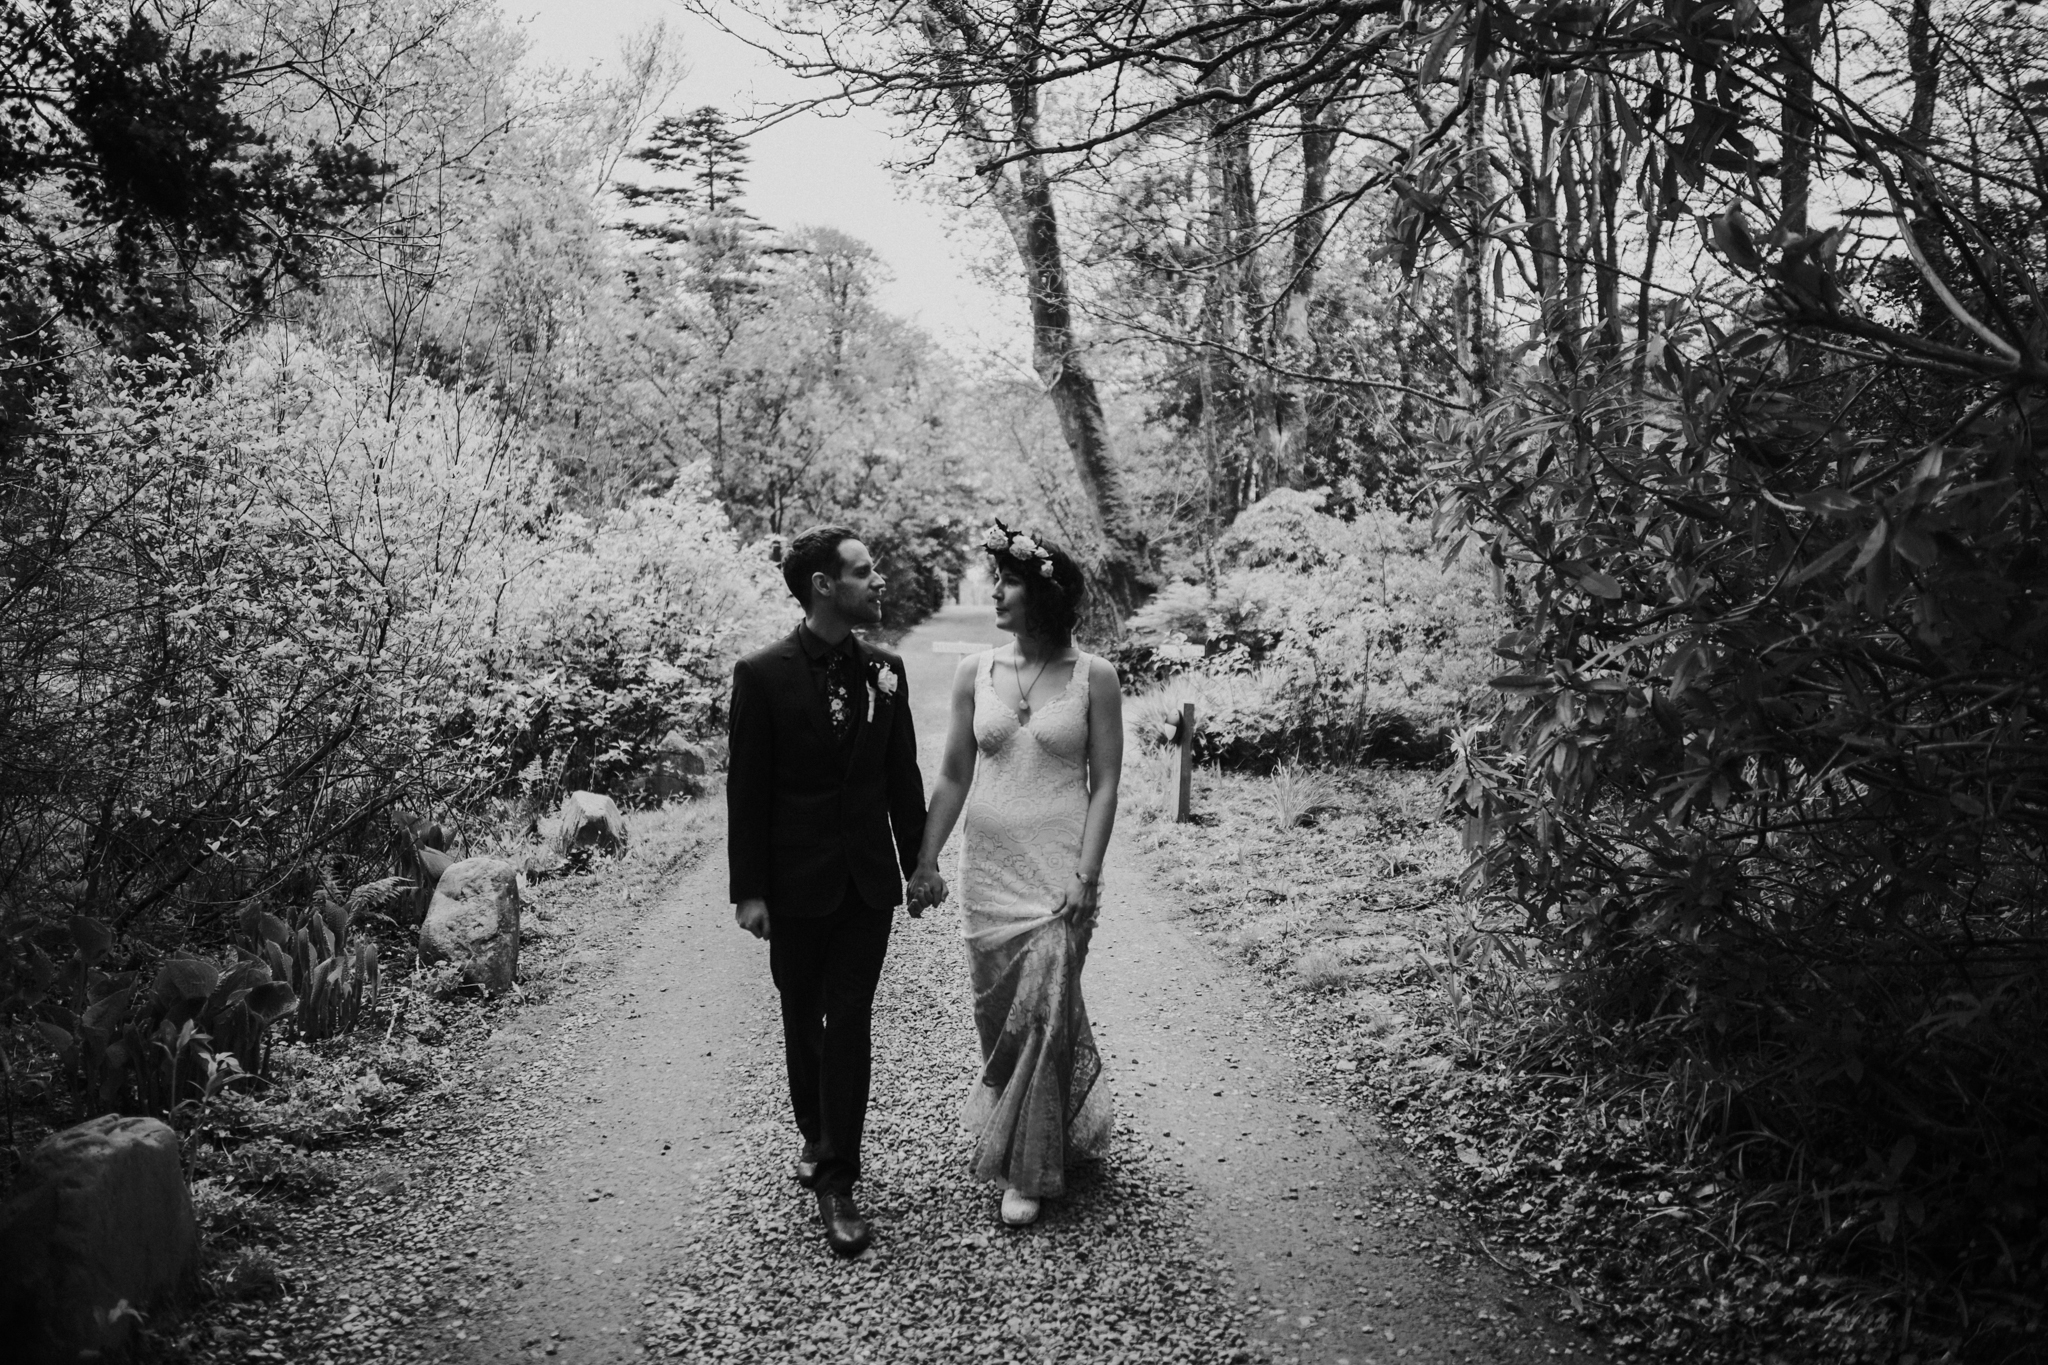 The happy couple is on the ground of Inish Beg Estate in Ireland for the couple photo shoot